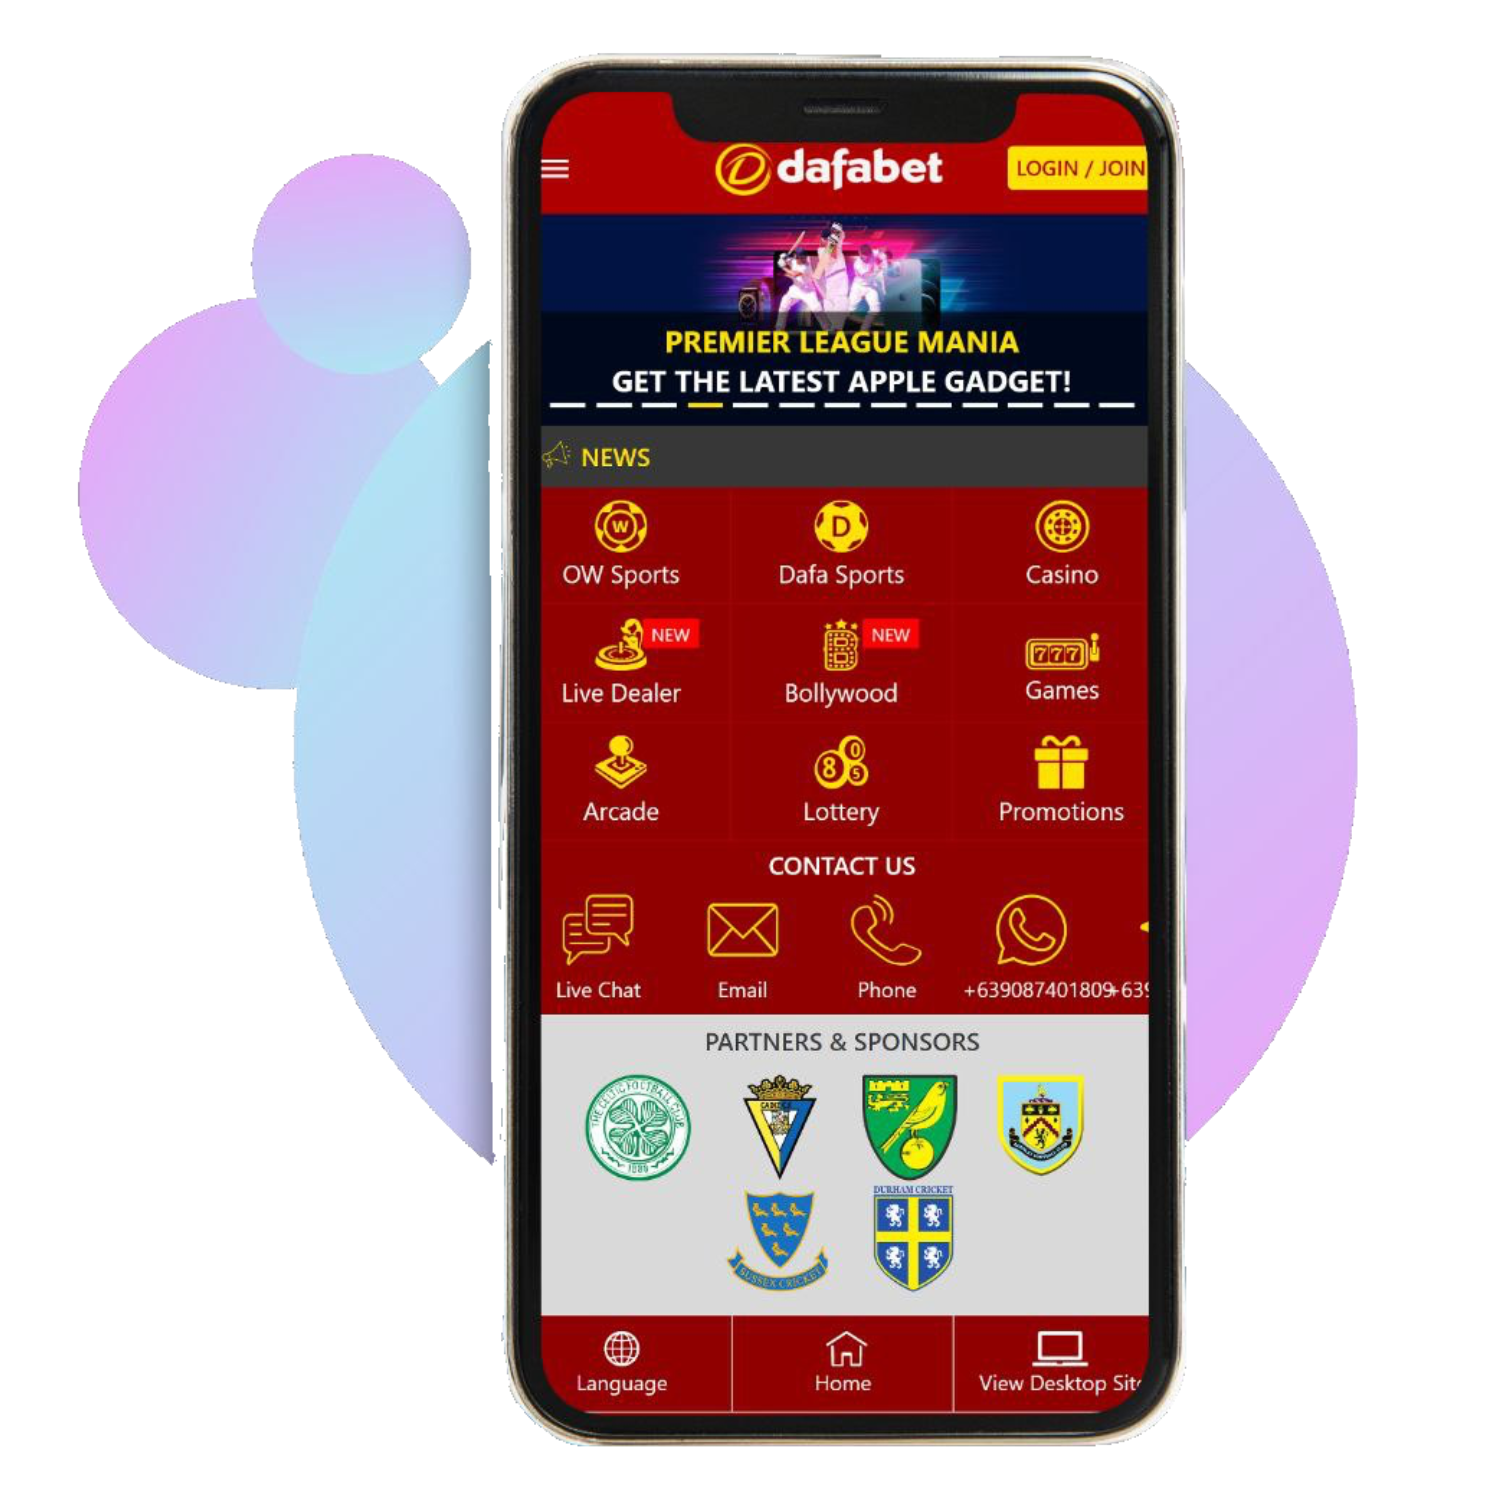 Install the Dafabet app and start cricket betting from your mobile phone.